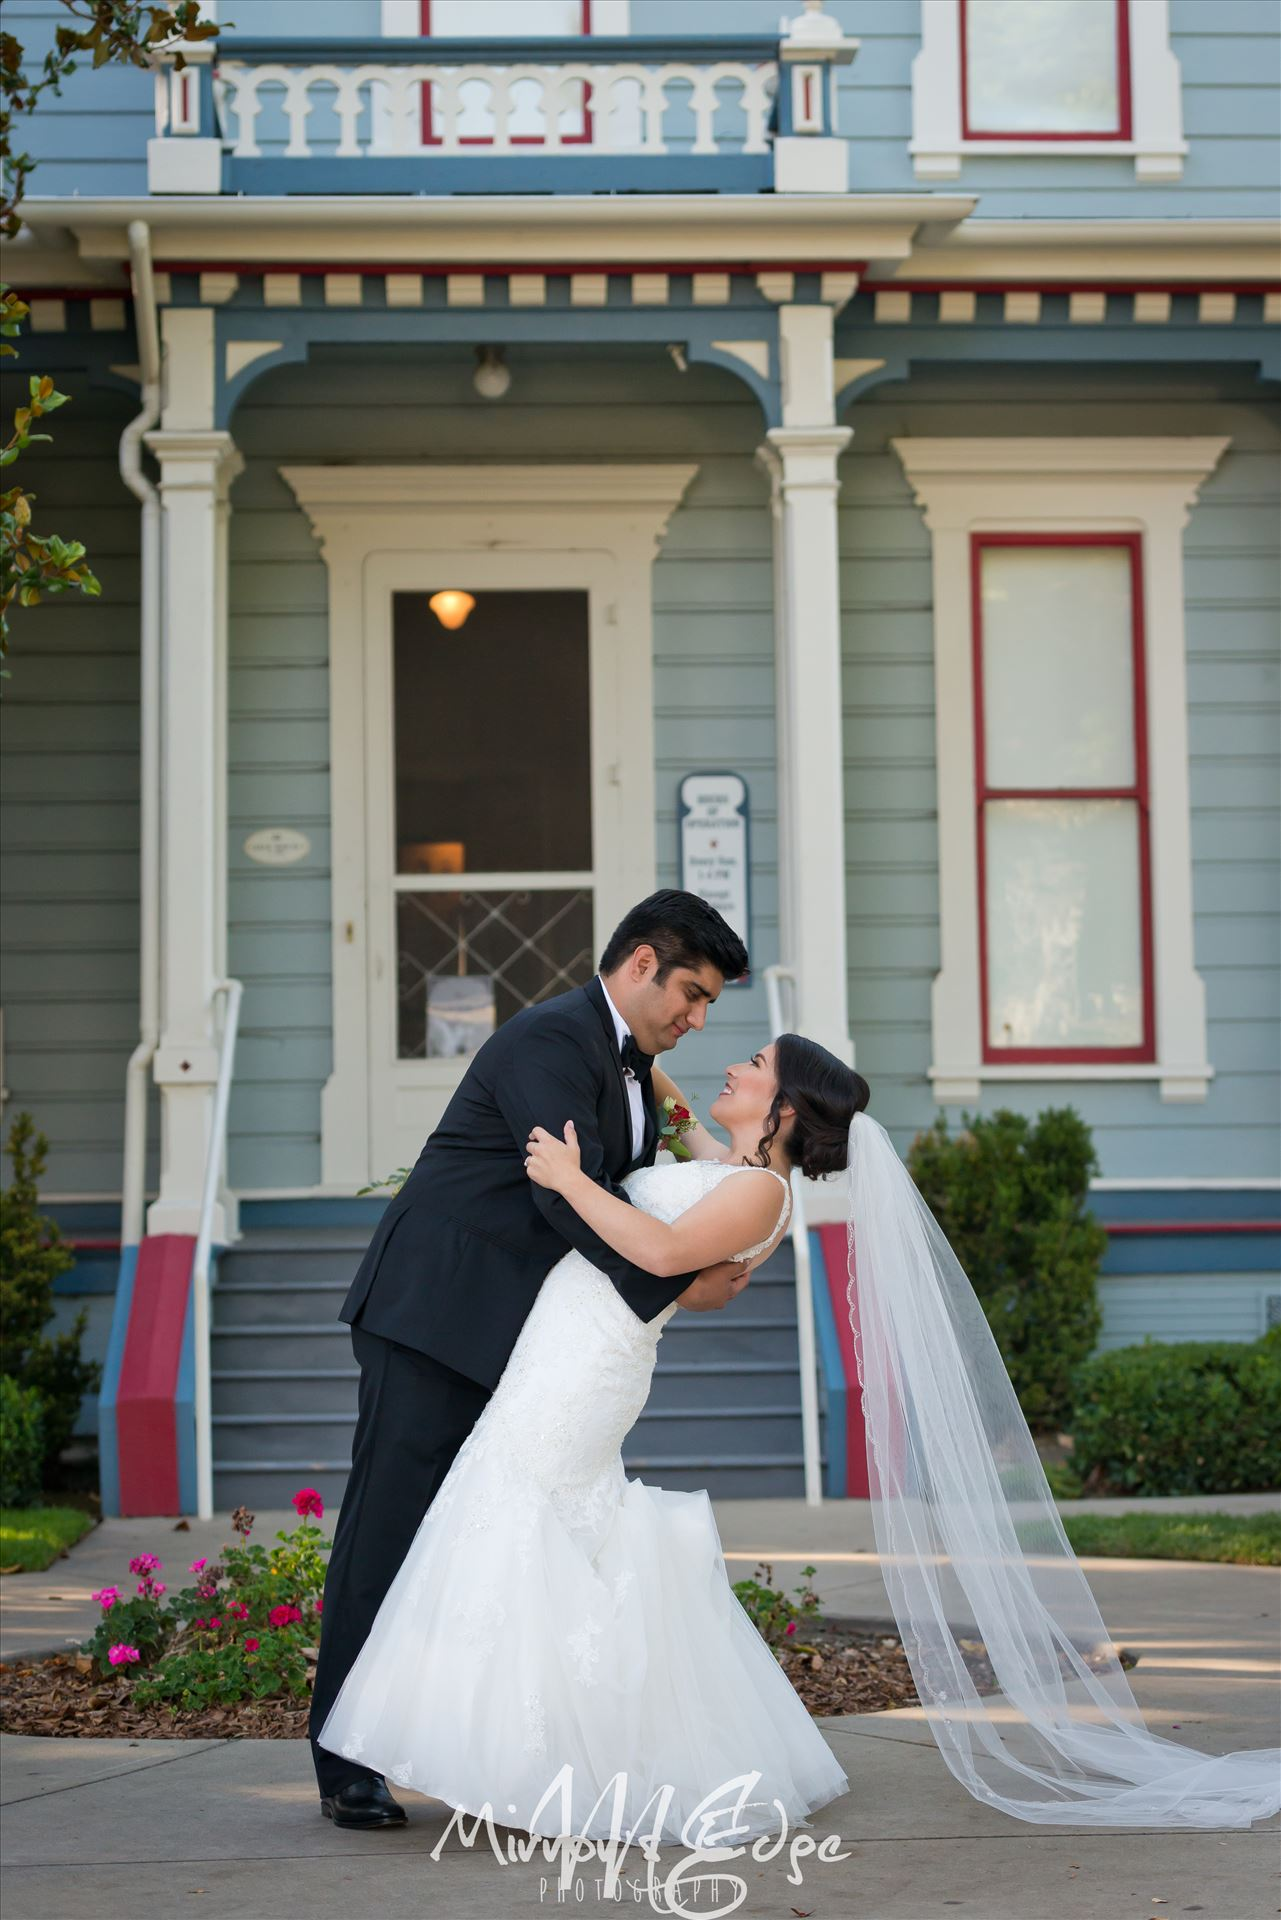 Port-9615.jpgModern and chic Downtown San Luis Obispo Wedding at the Historic Jack House and Gardens, wedding photography with love